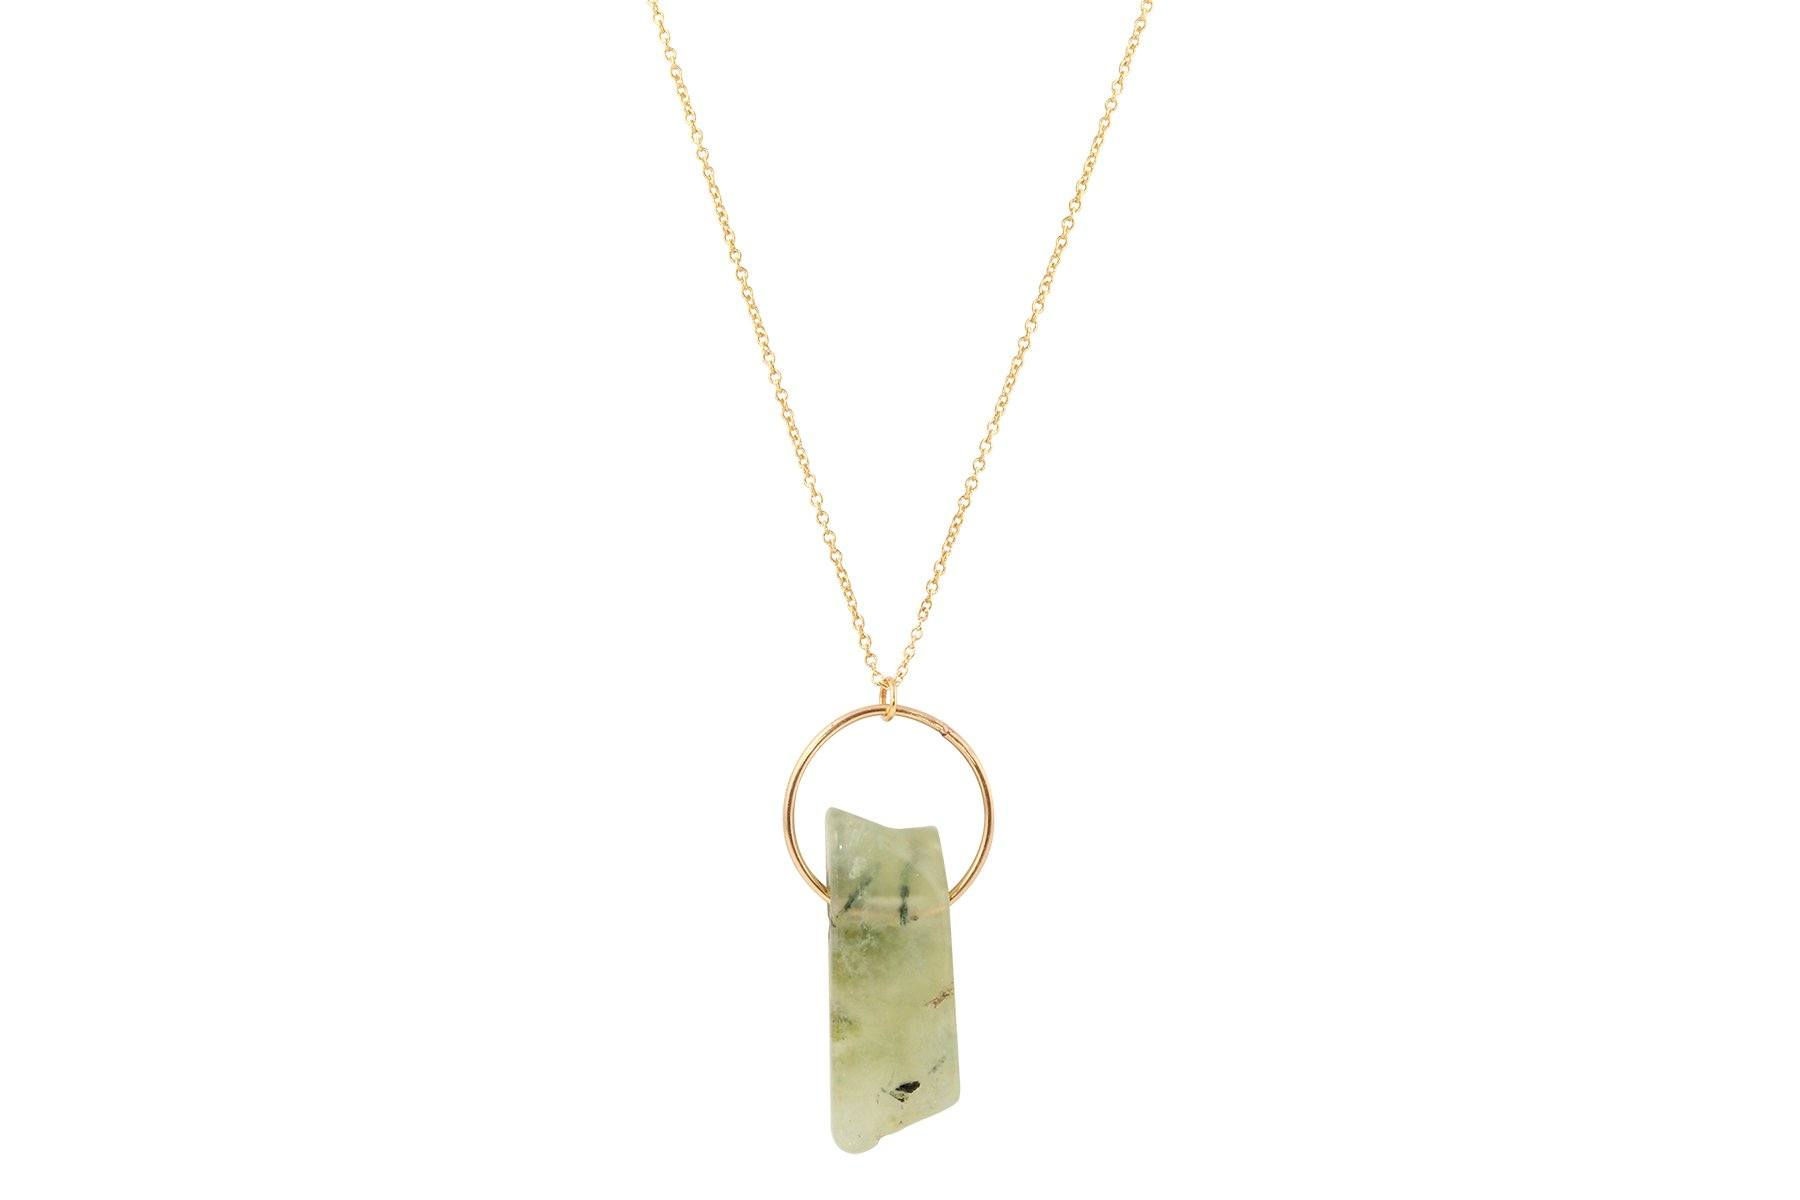 Prehnite crystal bar 14K yellow gold filled necklace